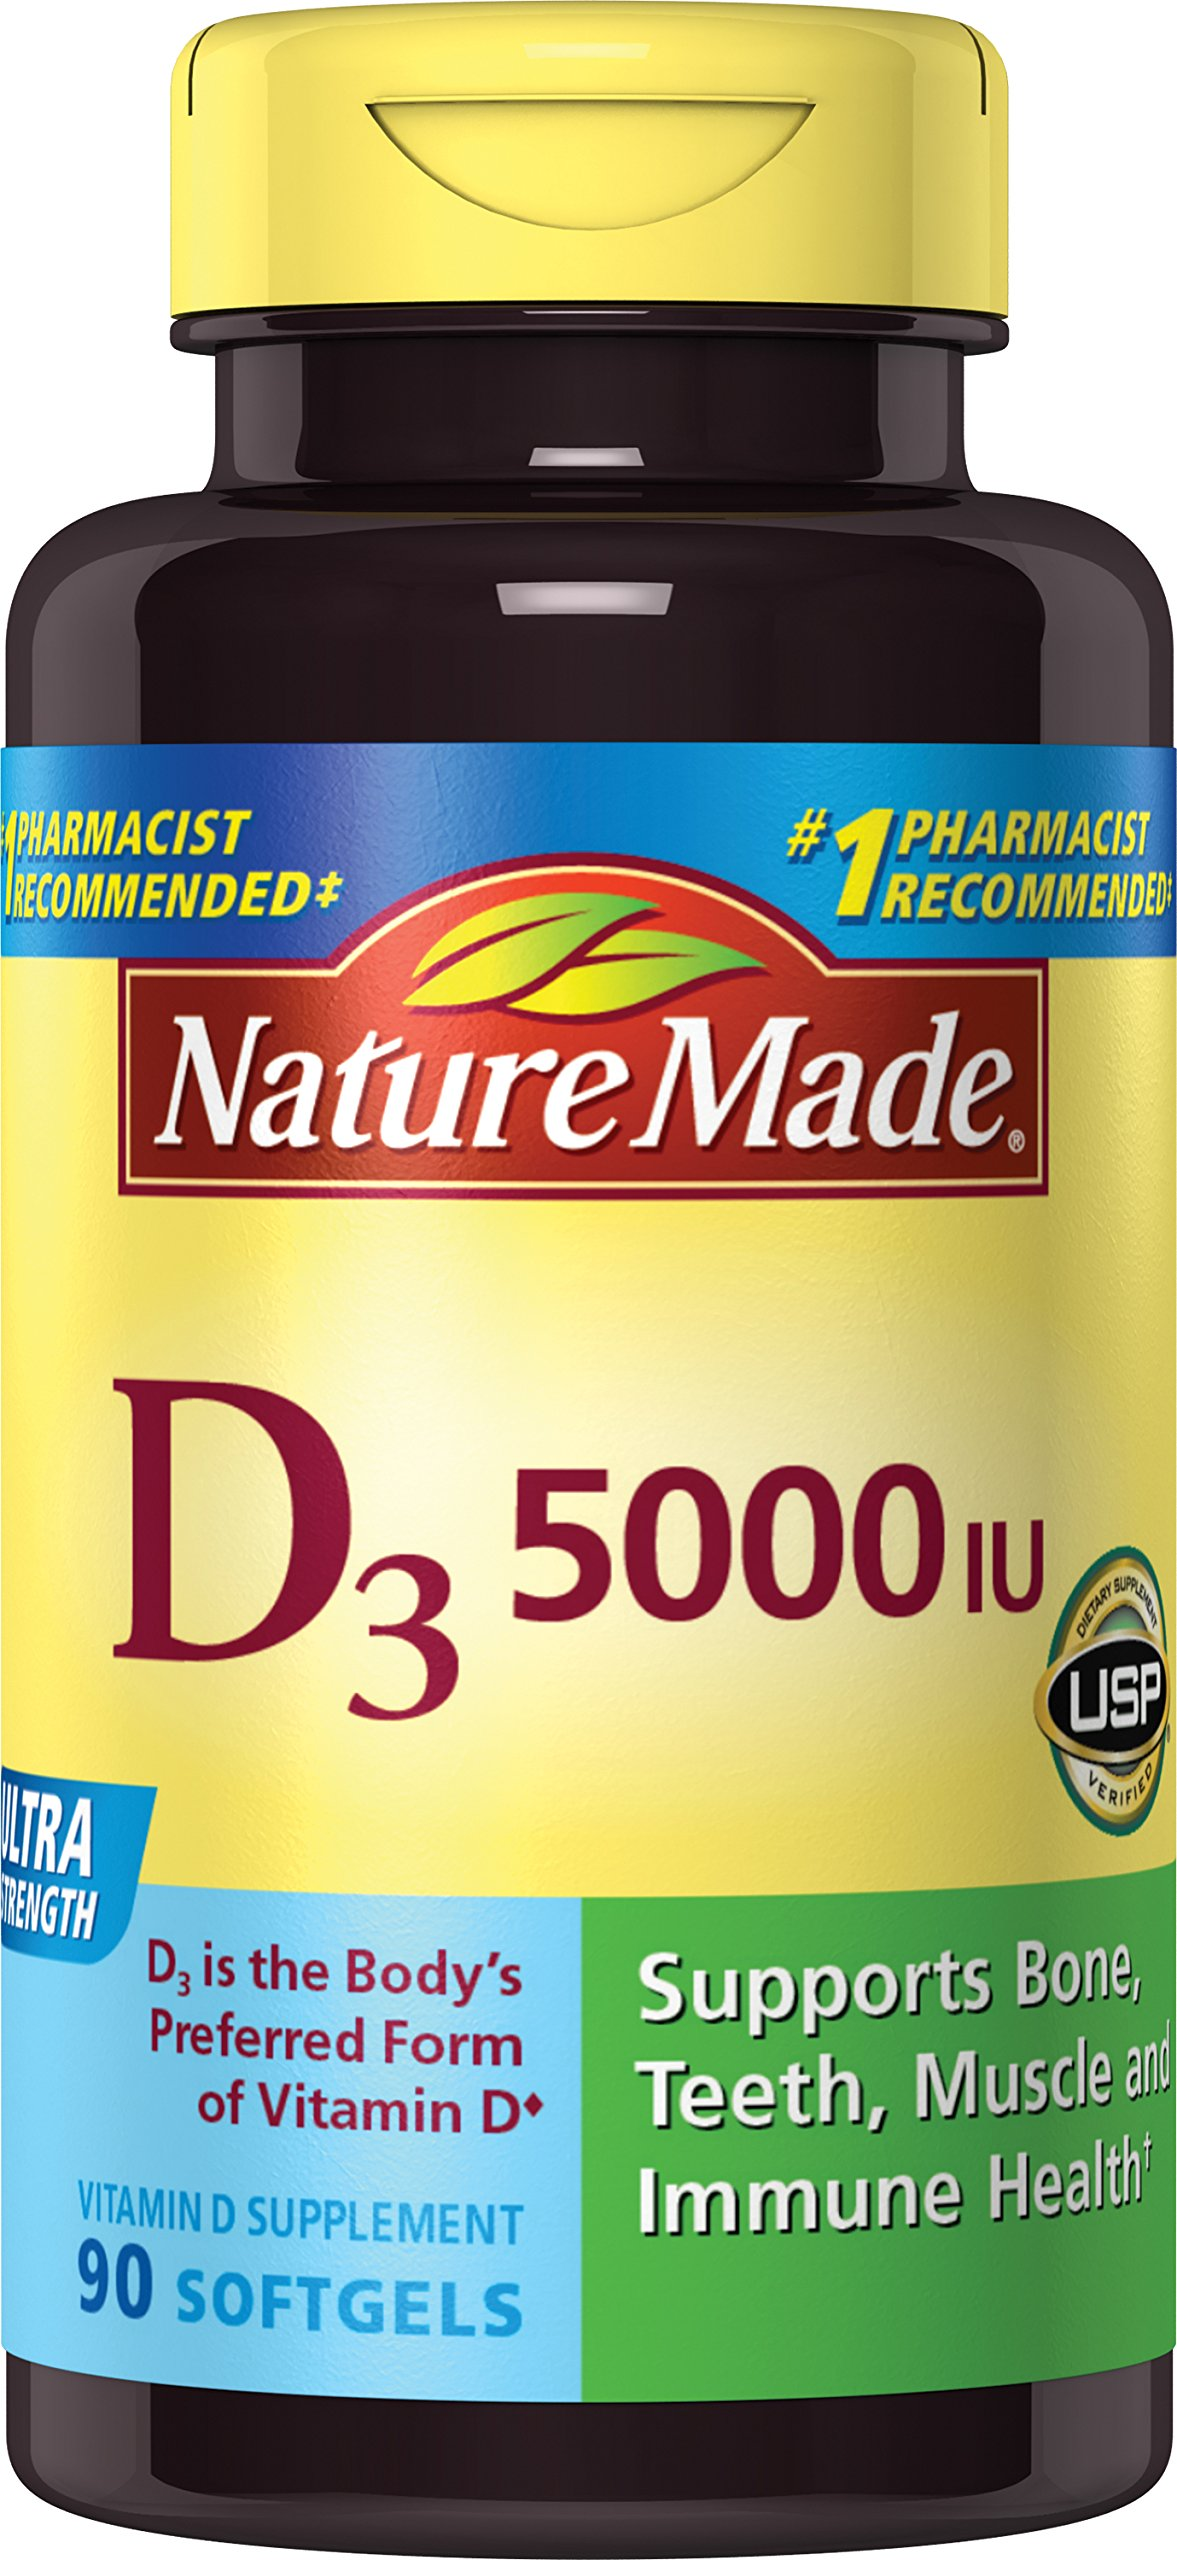 Nature Made Vitamin D3 5000 IU Ultra Strength Softgels 90 Ct